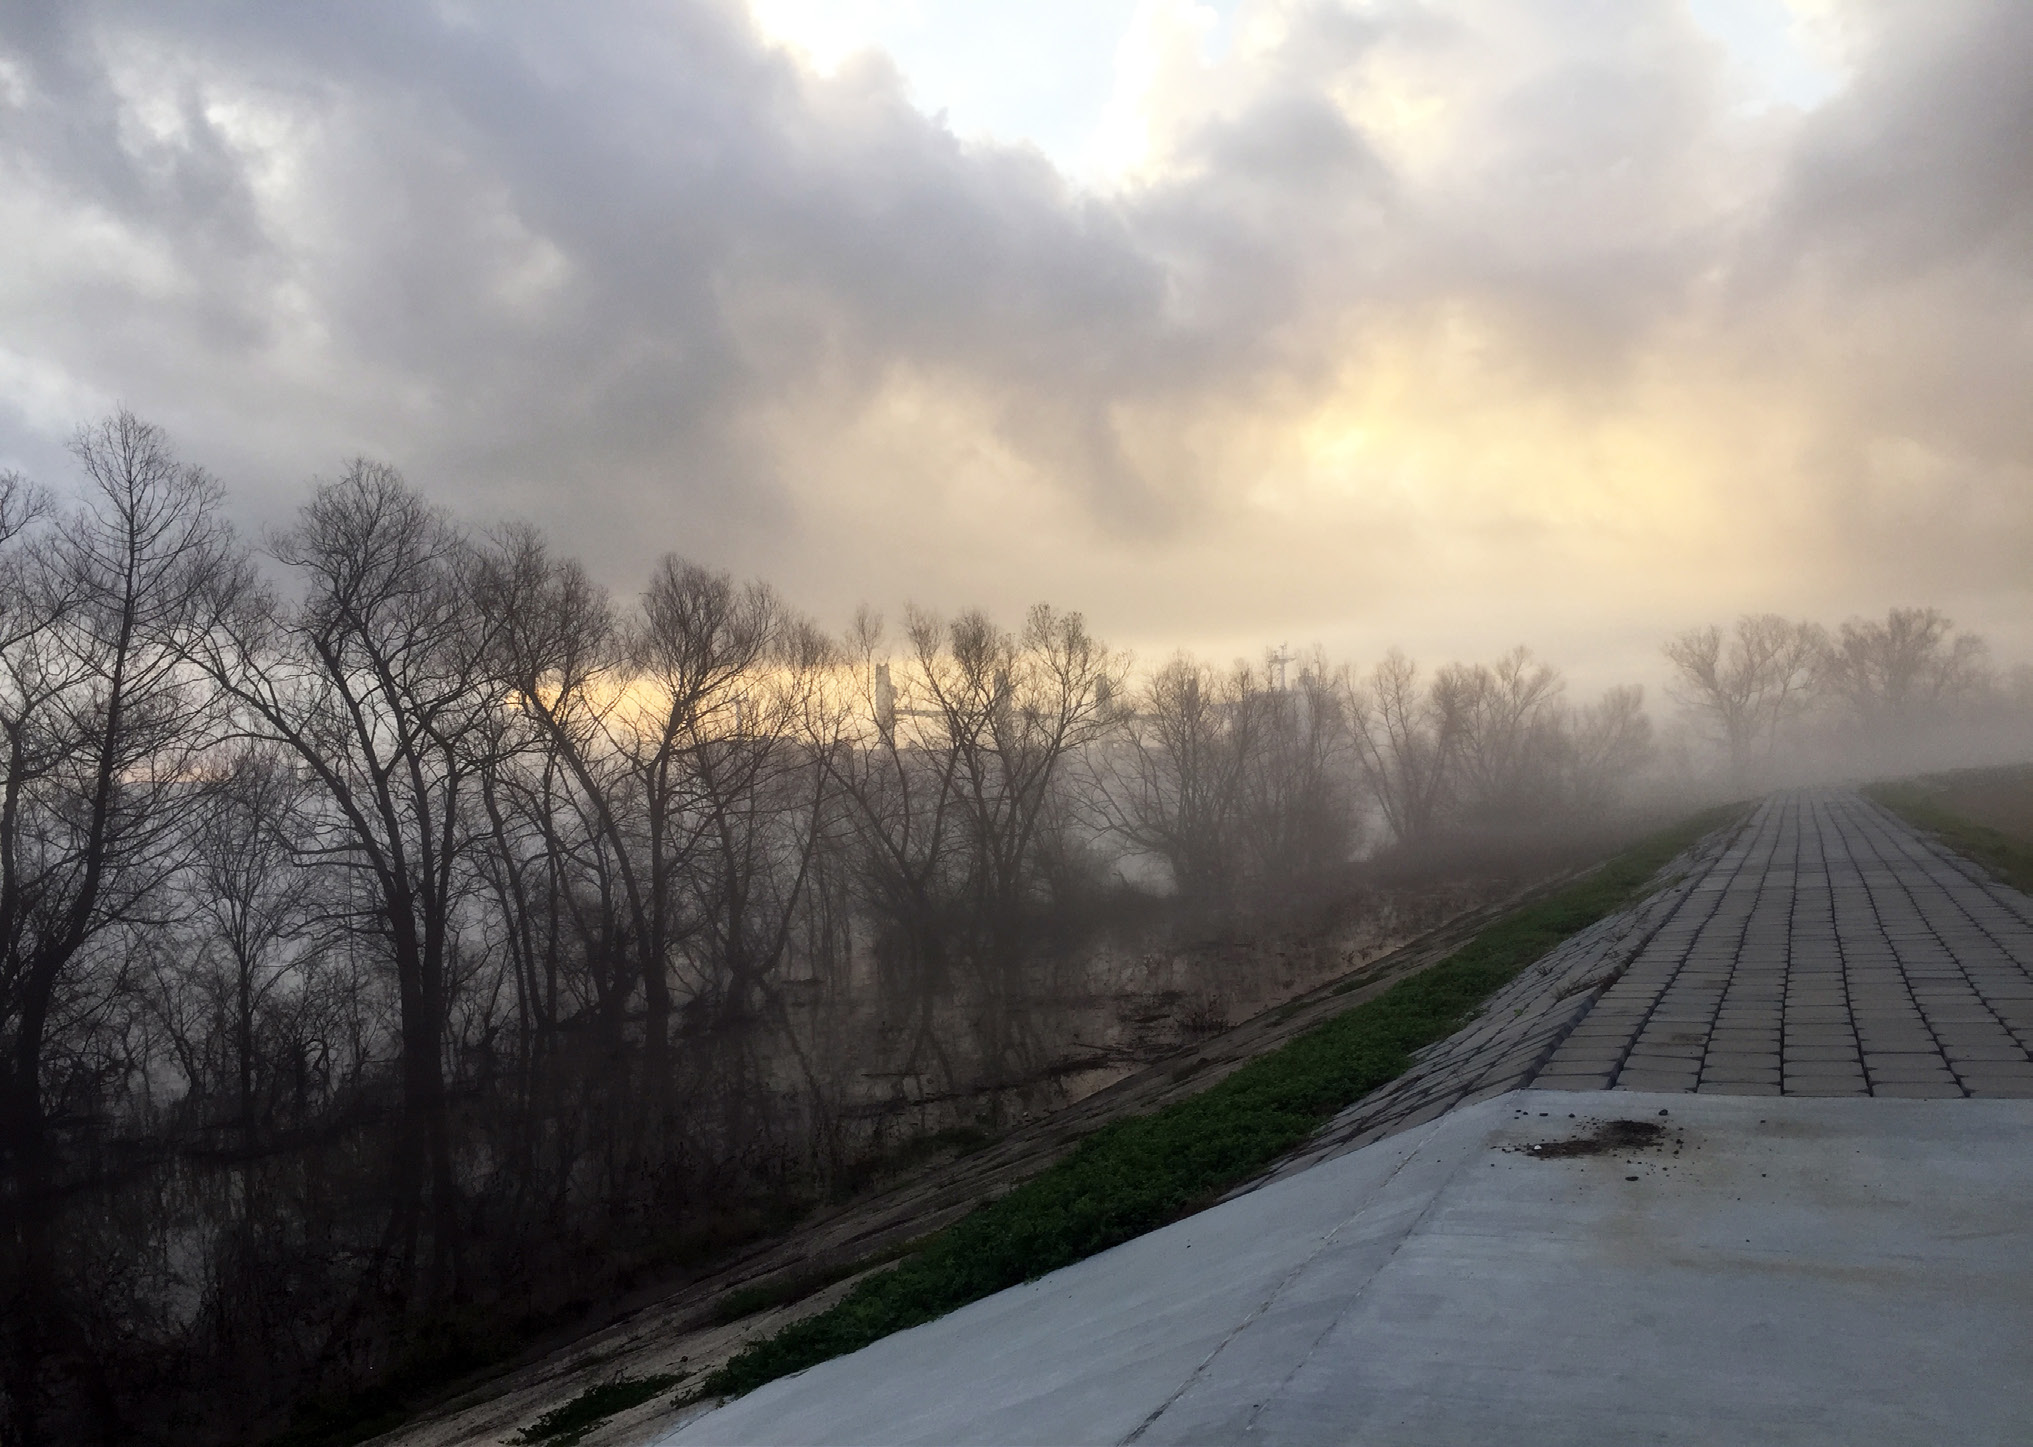 A picture of a levee on a foggy day.